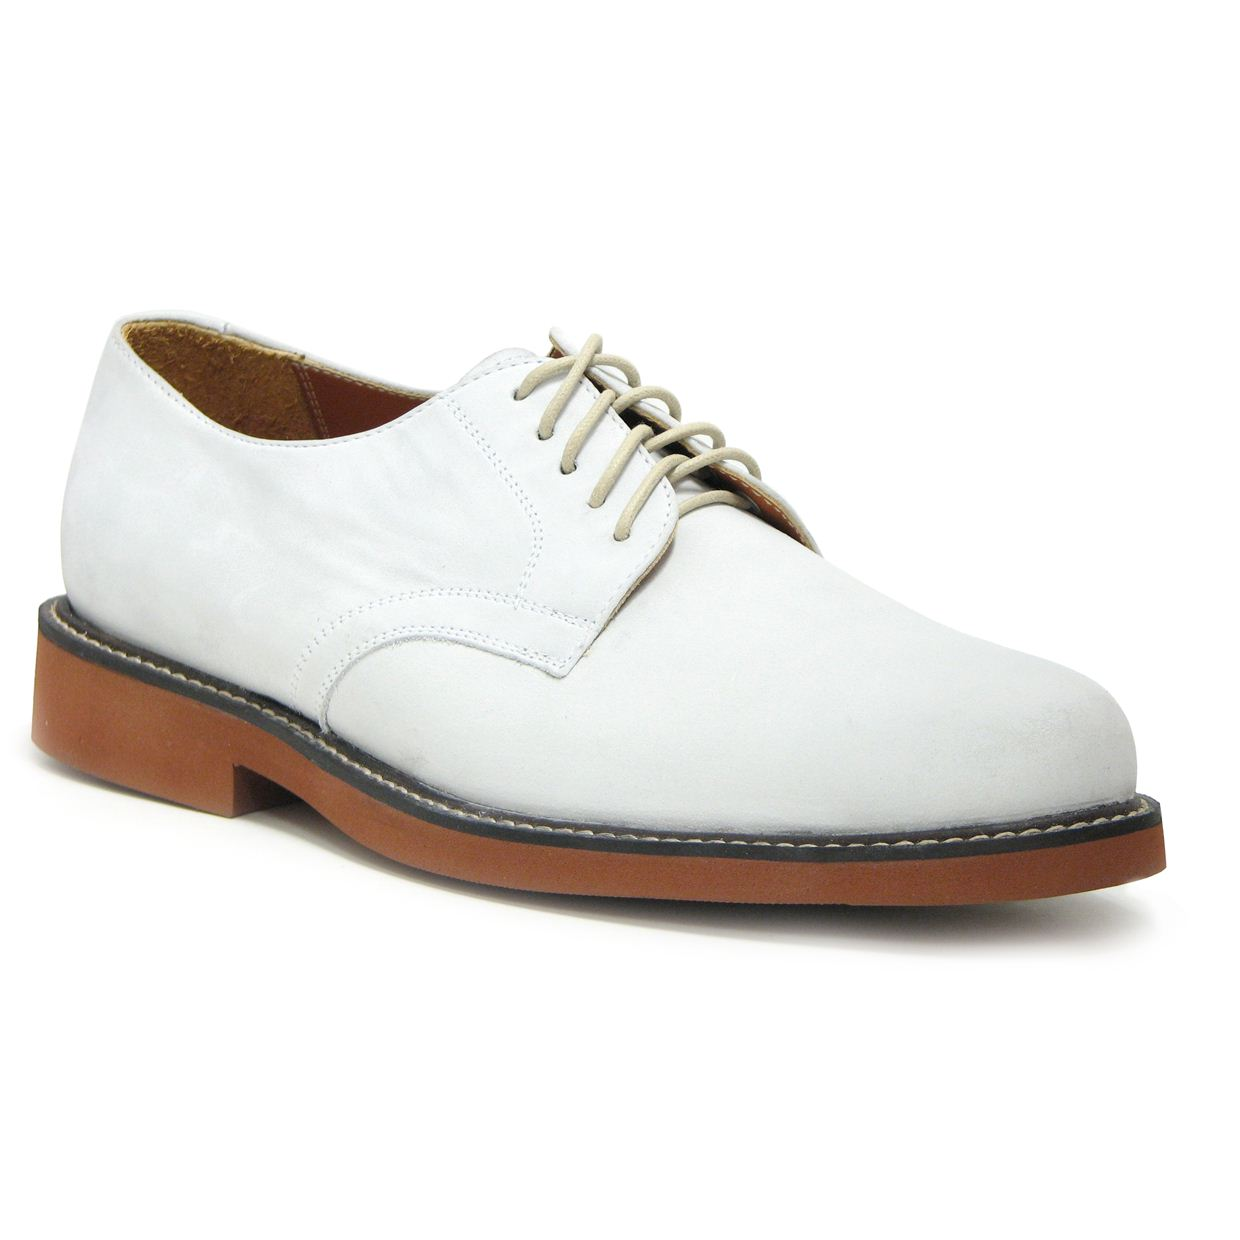 david spencer casual shoes at globalgolf